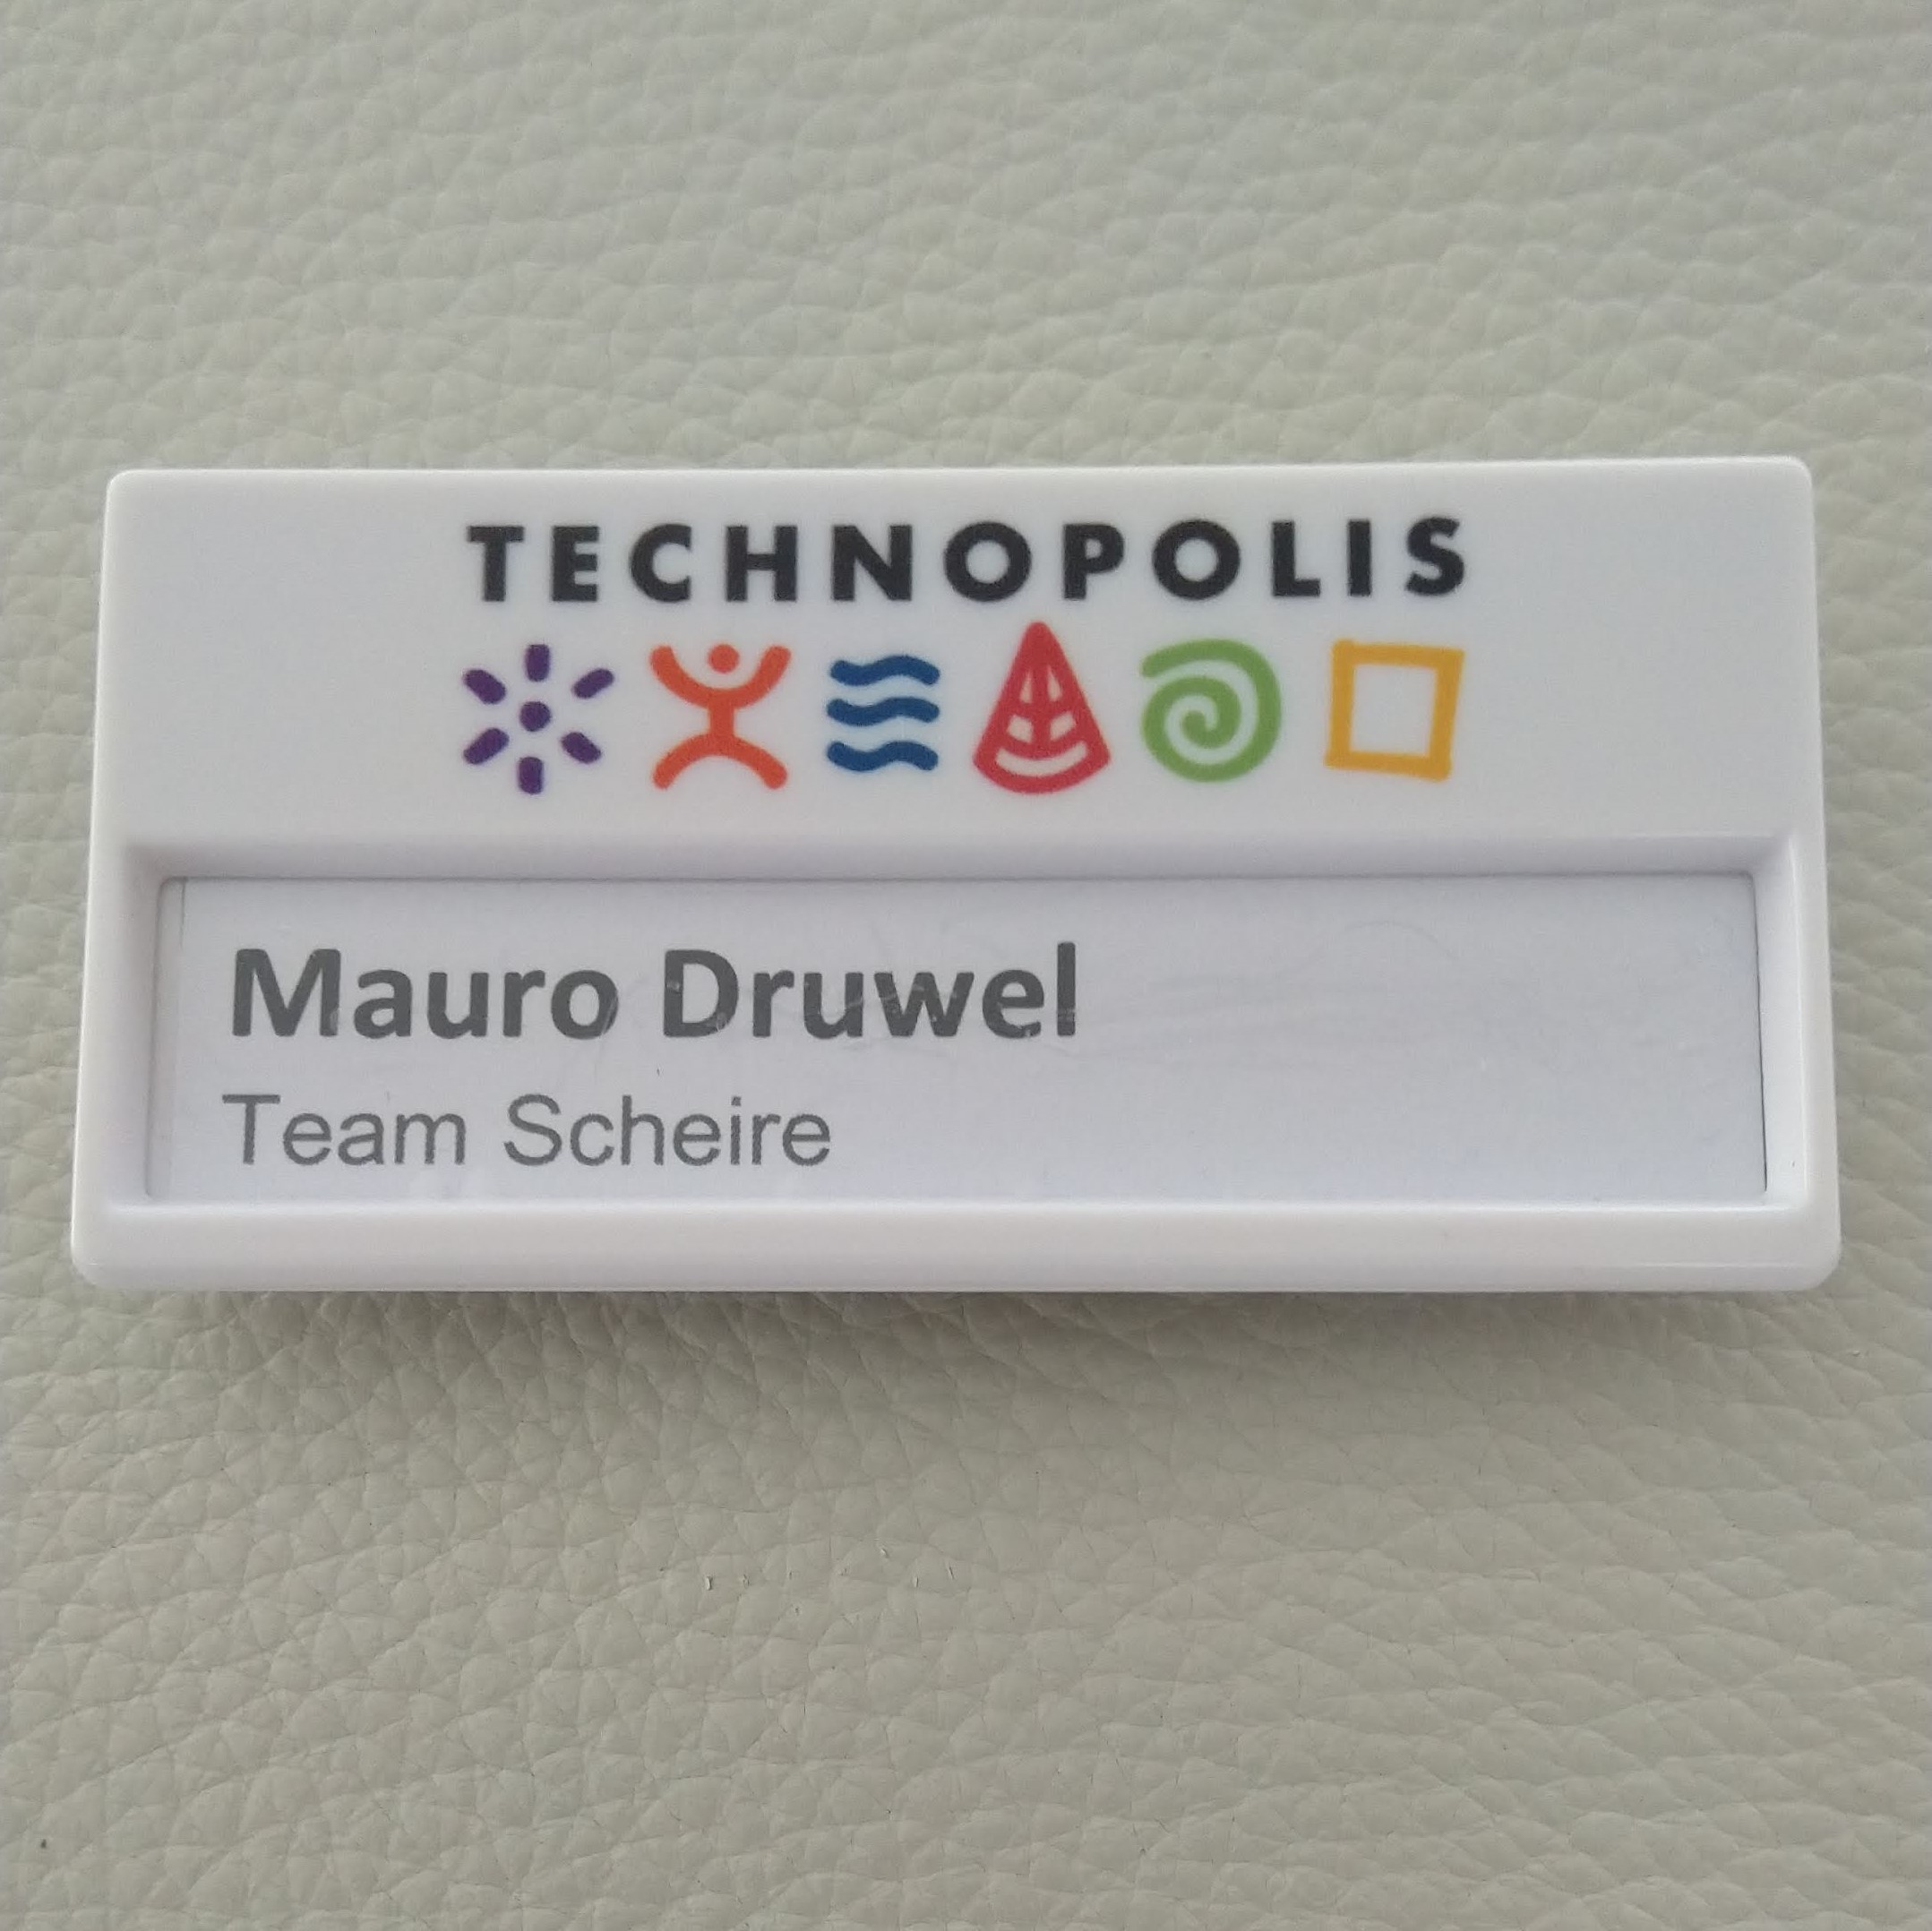 Team Scheire @ Technopolis